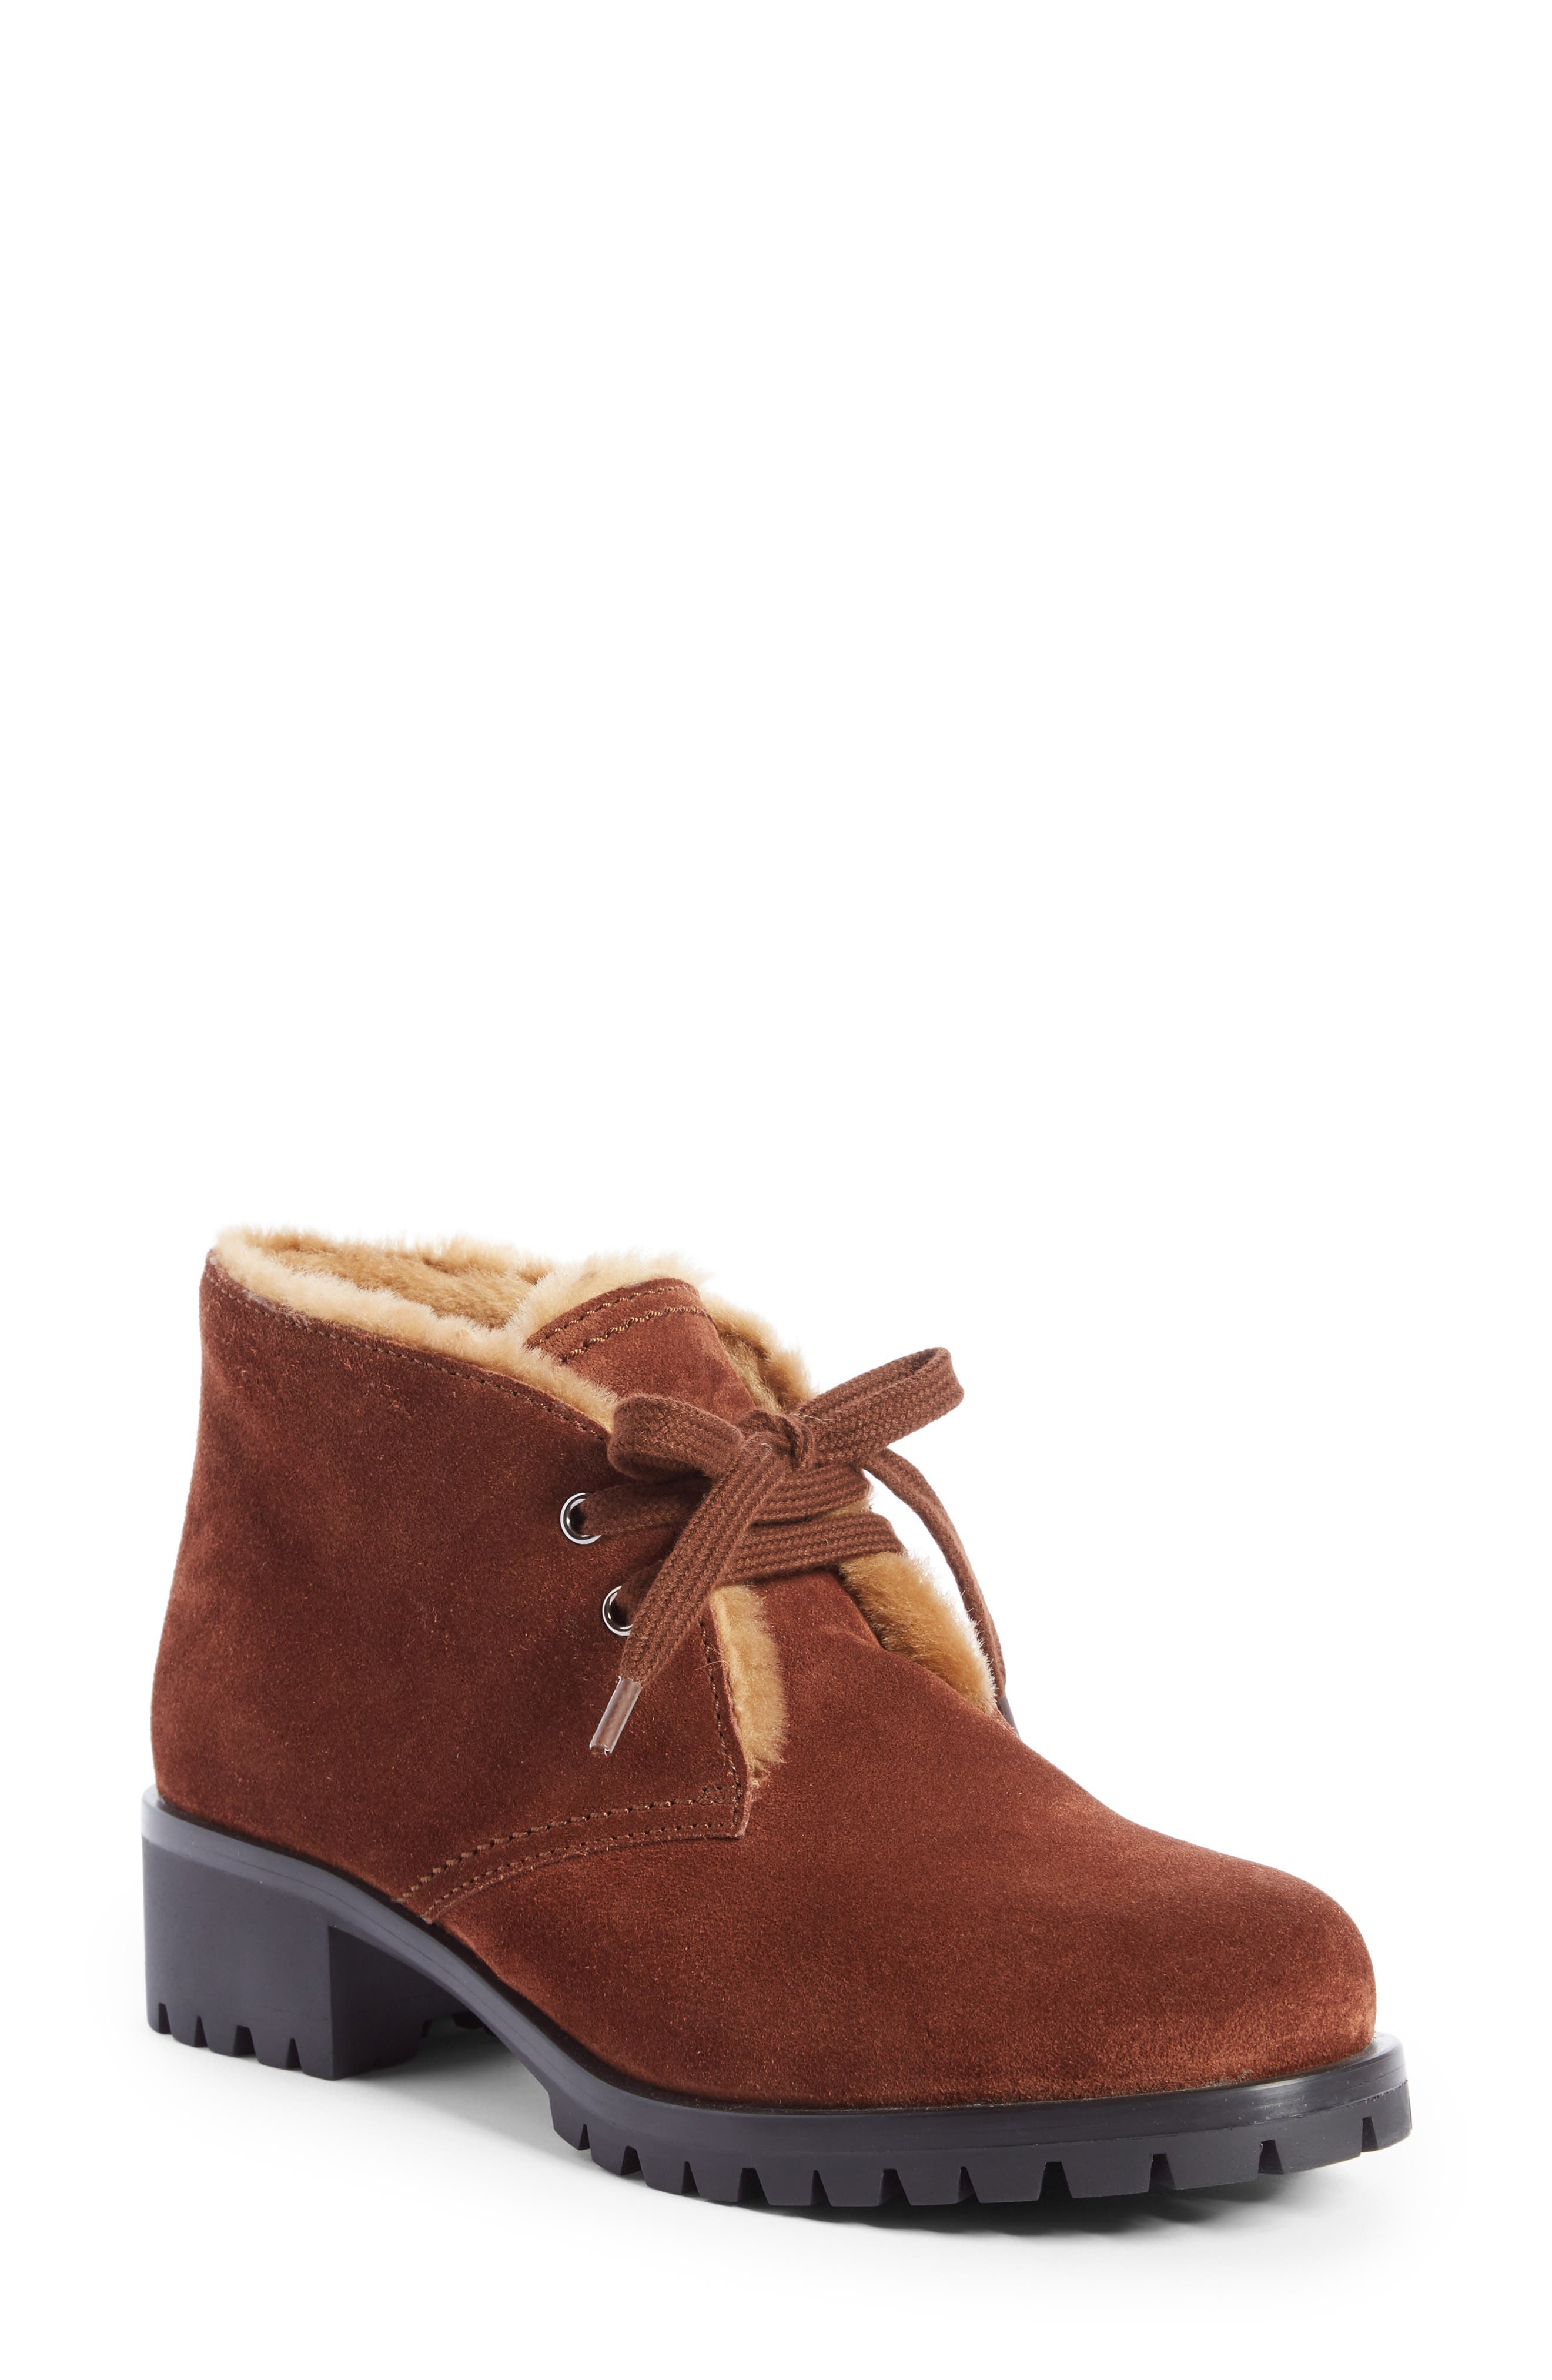 Main Image - Prada Genuine Shearling Lined Bootie (Women)